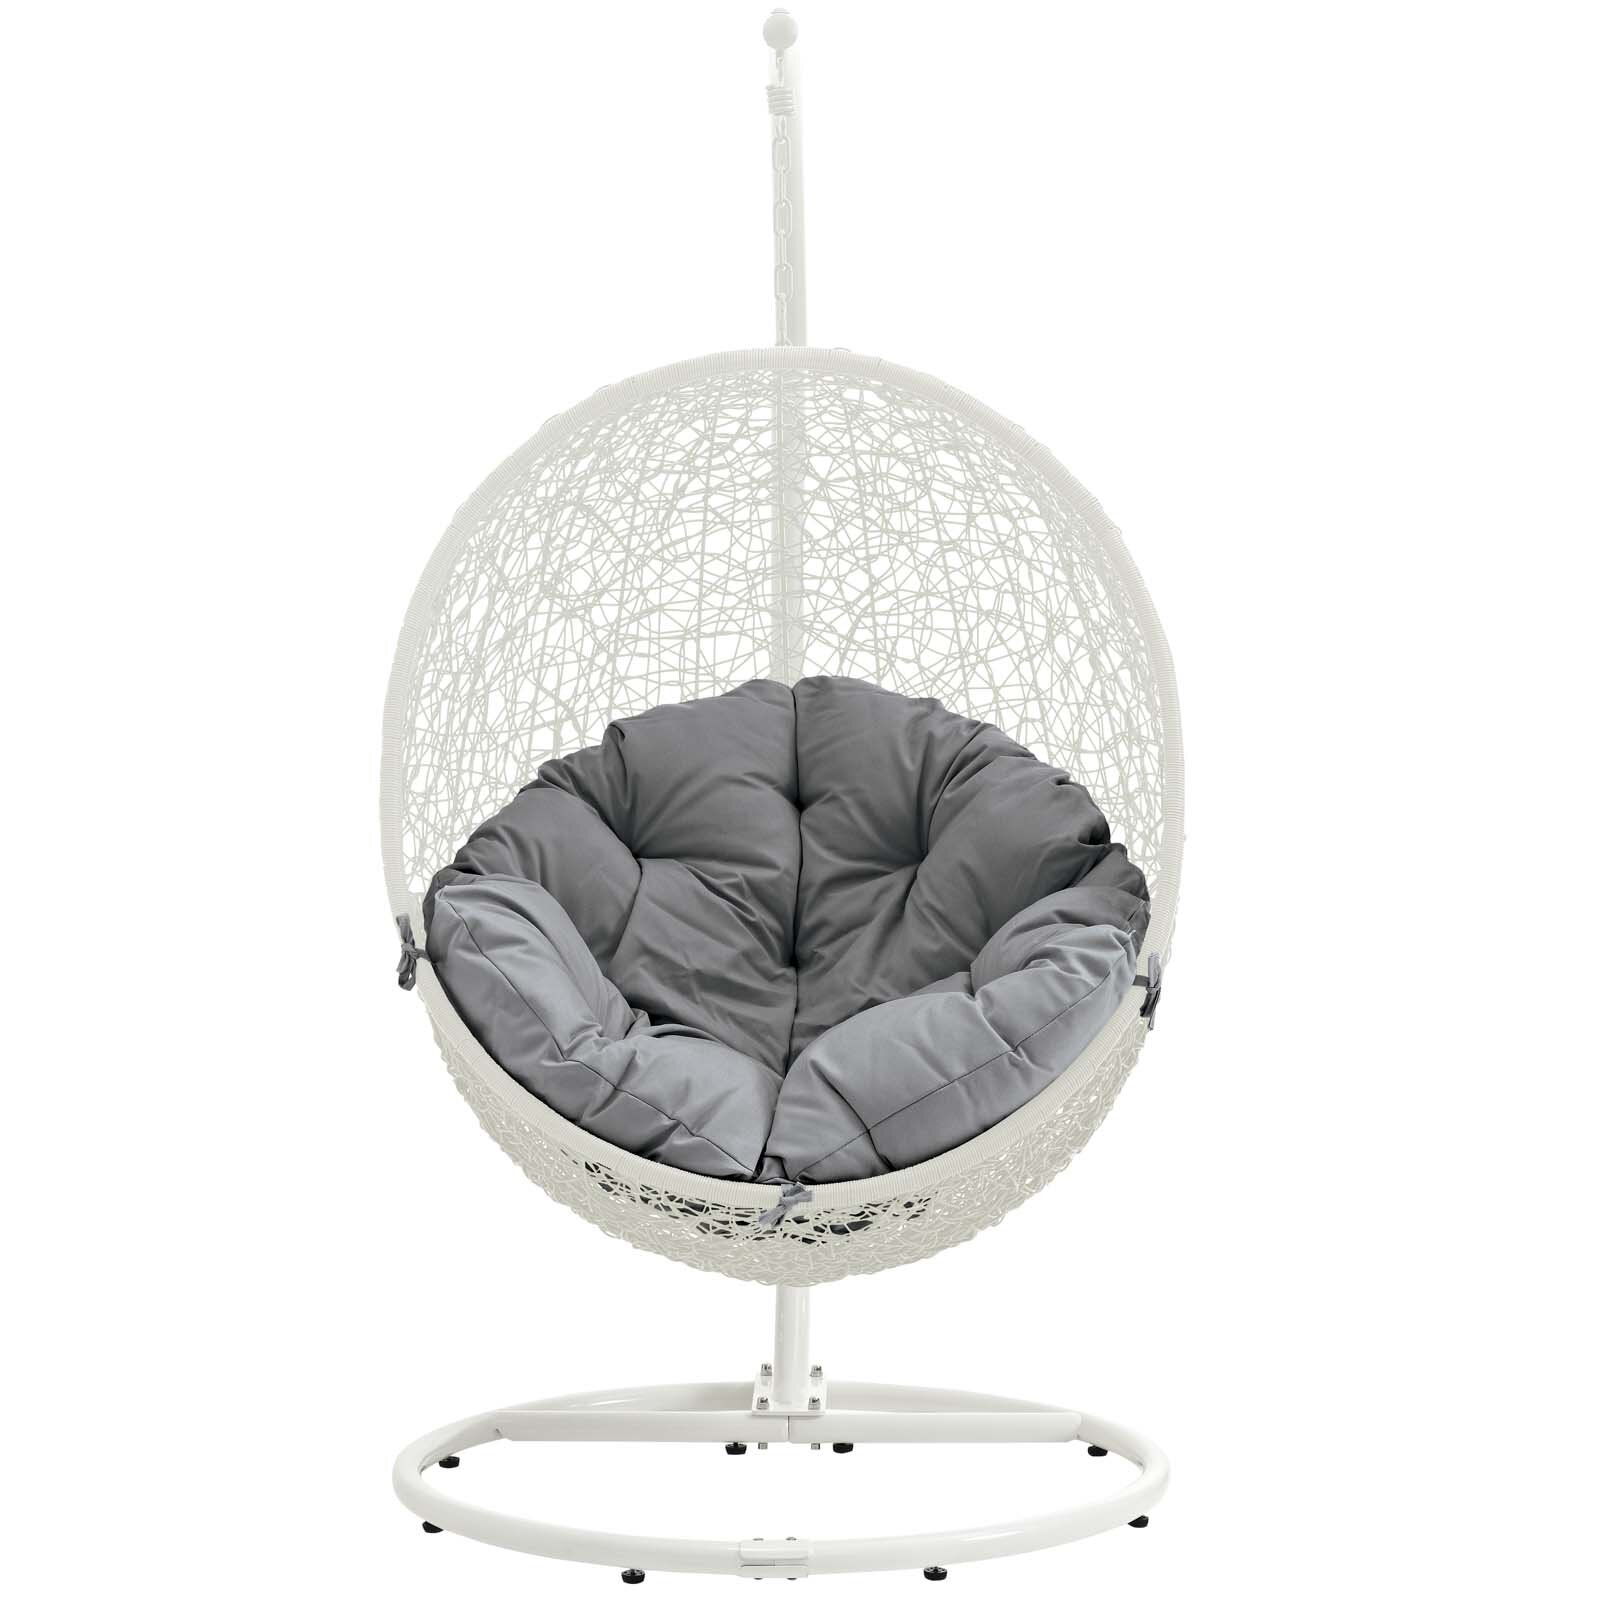 Valletta Swing Chair With Stand Reviews Allmodern